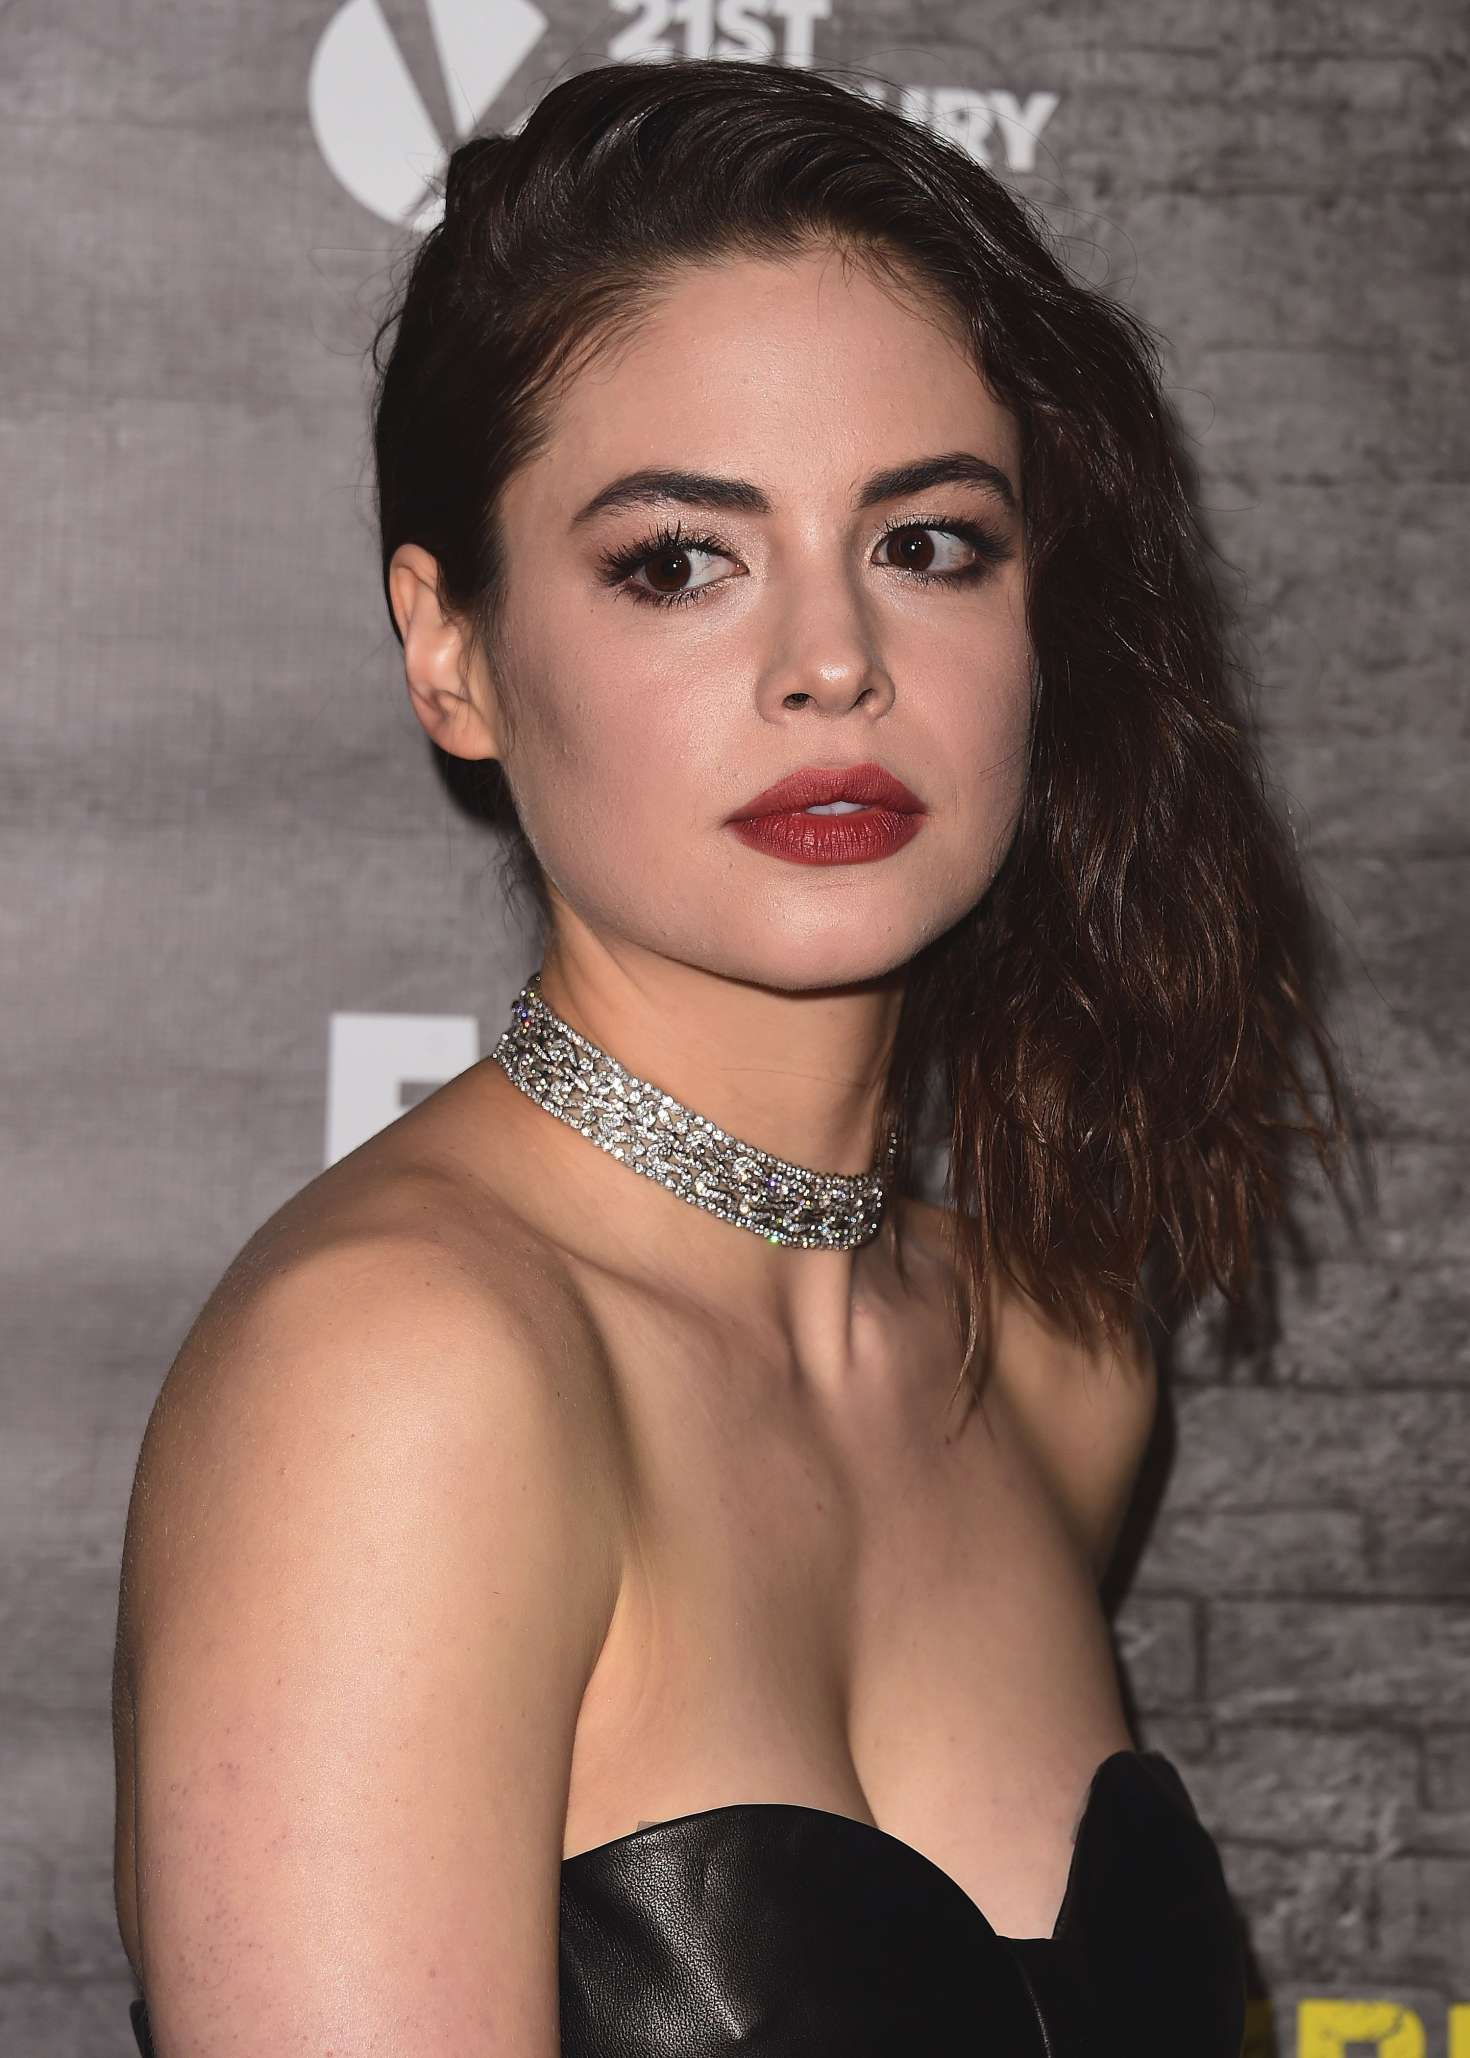 25+ Populer Images of Conor Leslie - Ranny Gallery